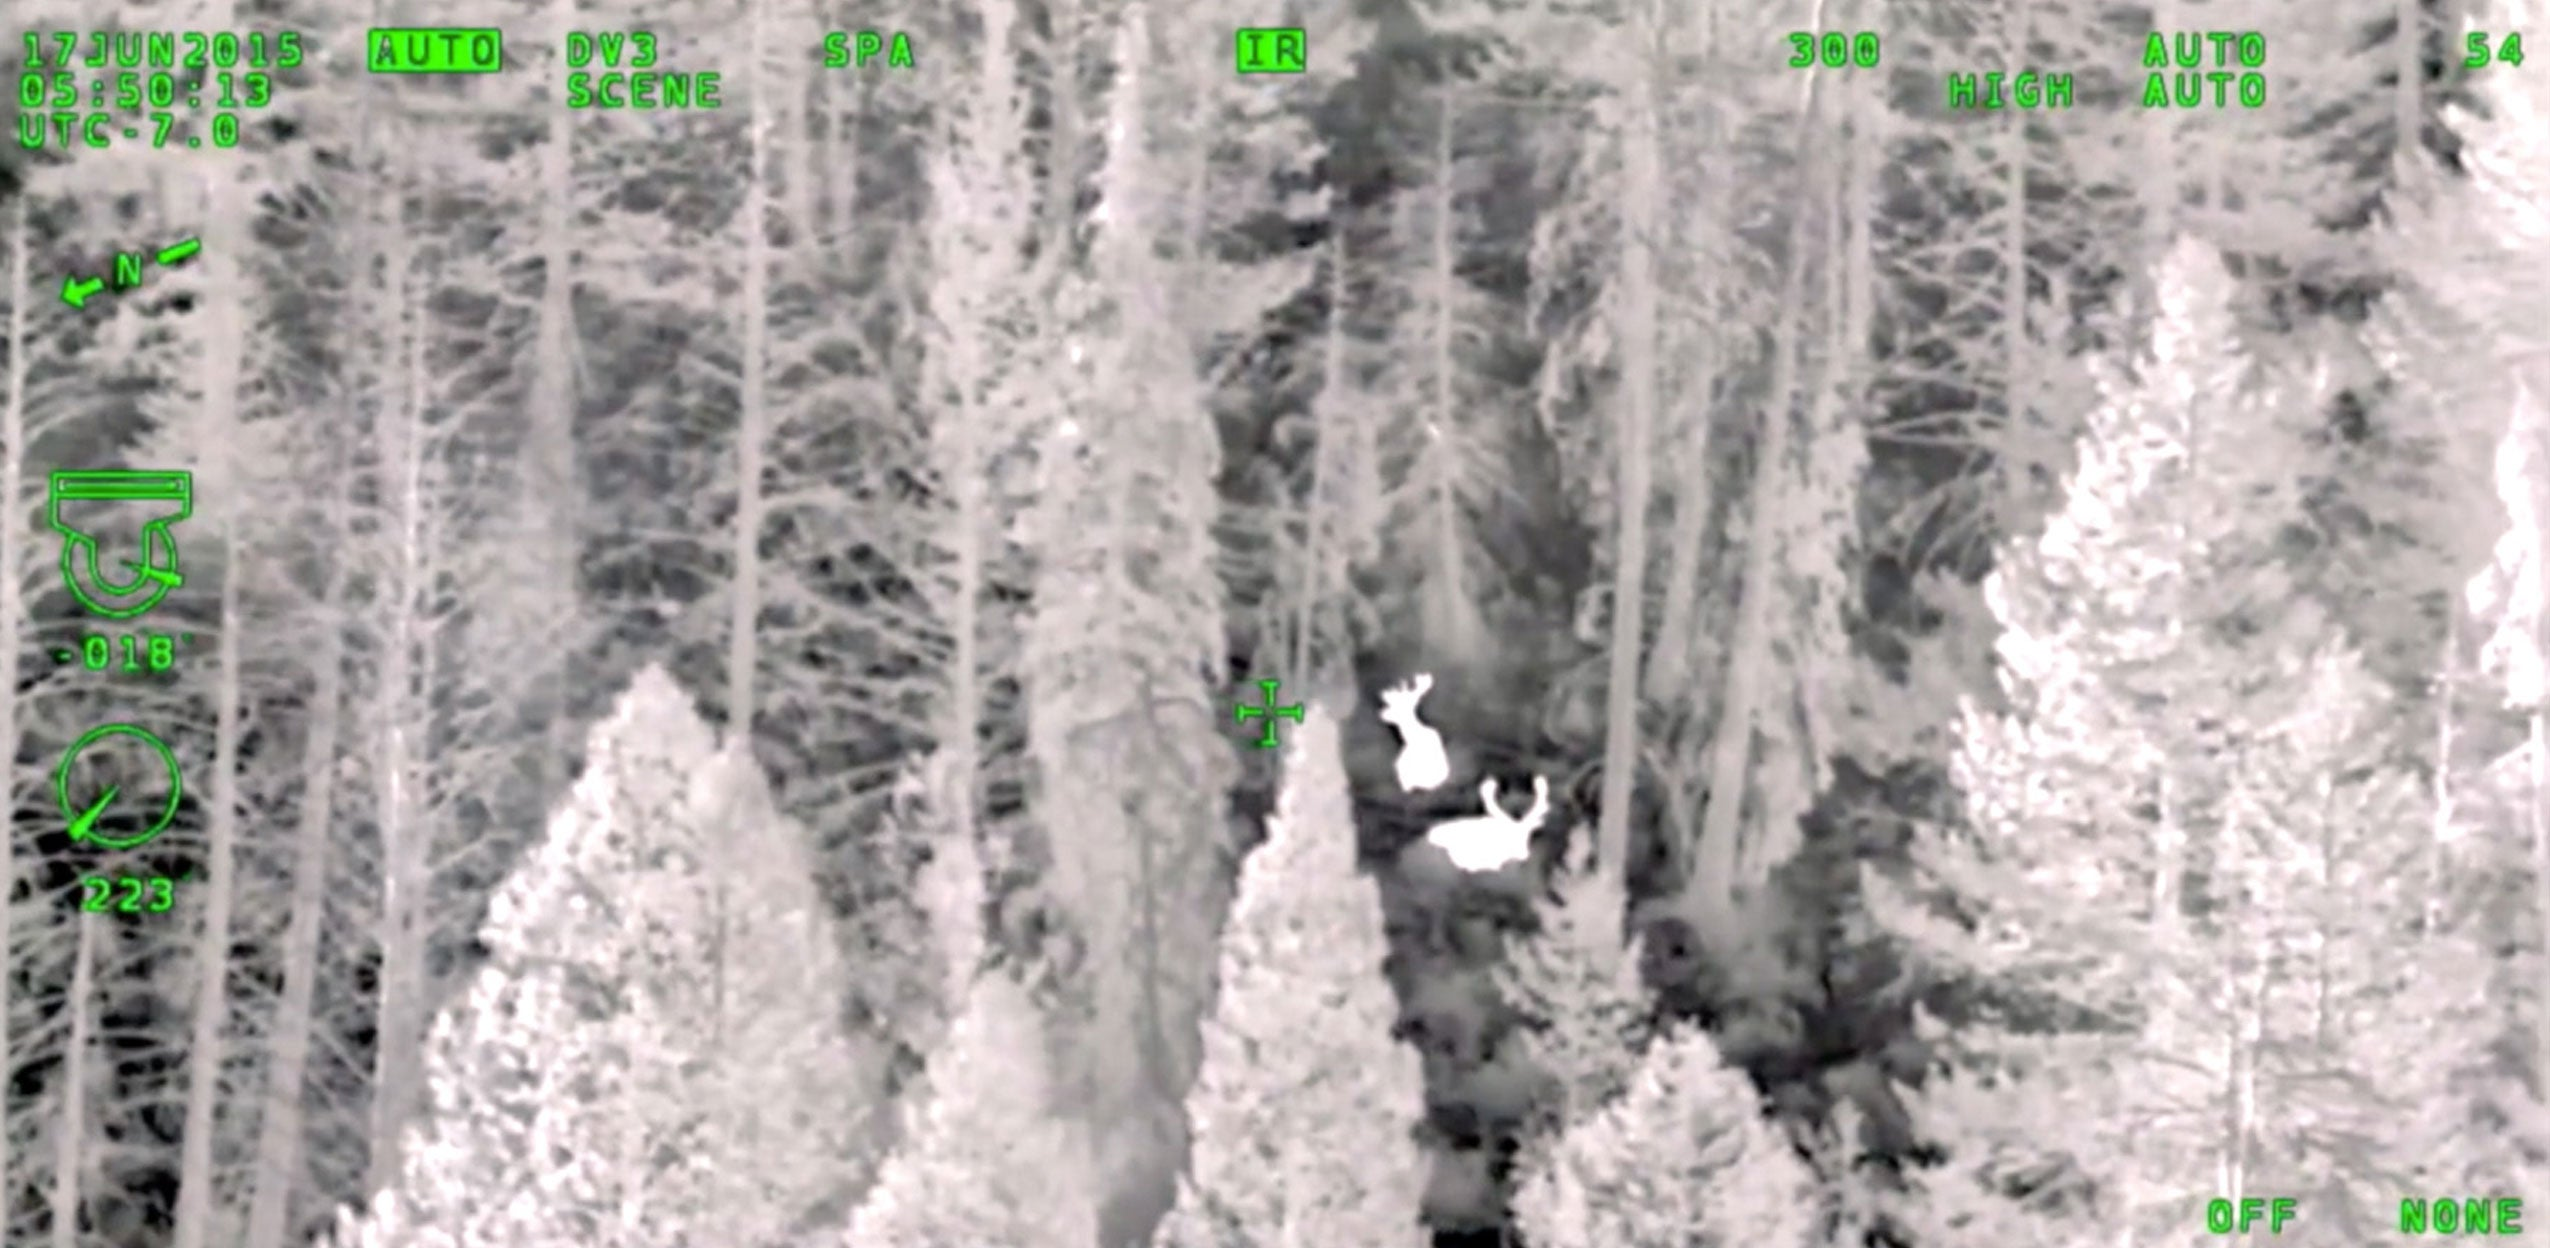 Electro-optical infrared camera image of deer in the woods captured with a WESCAM MX-Series system